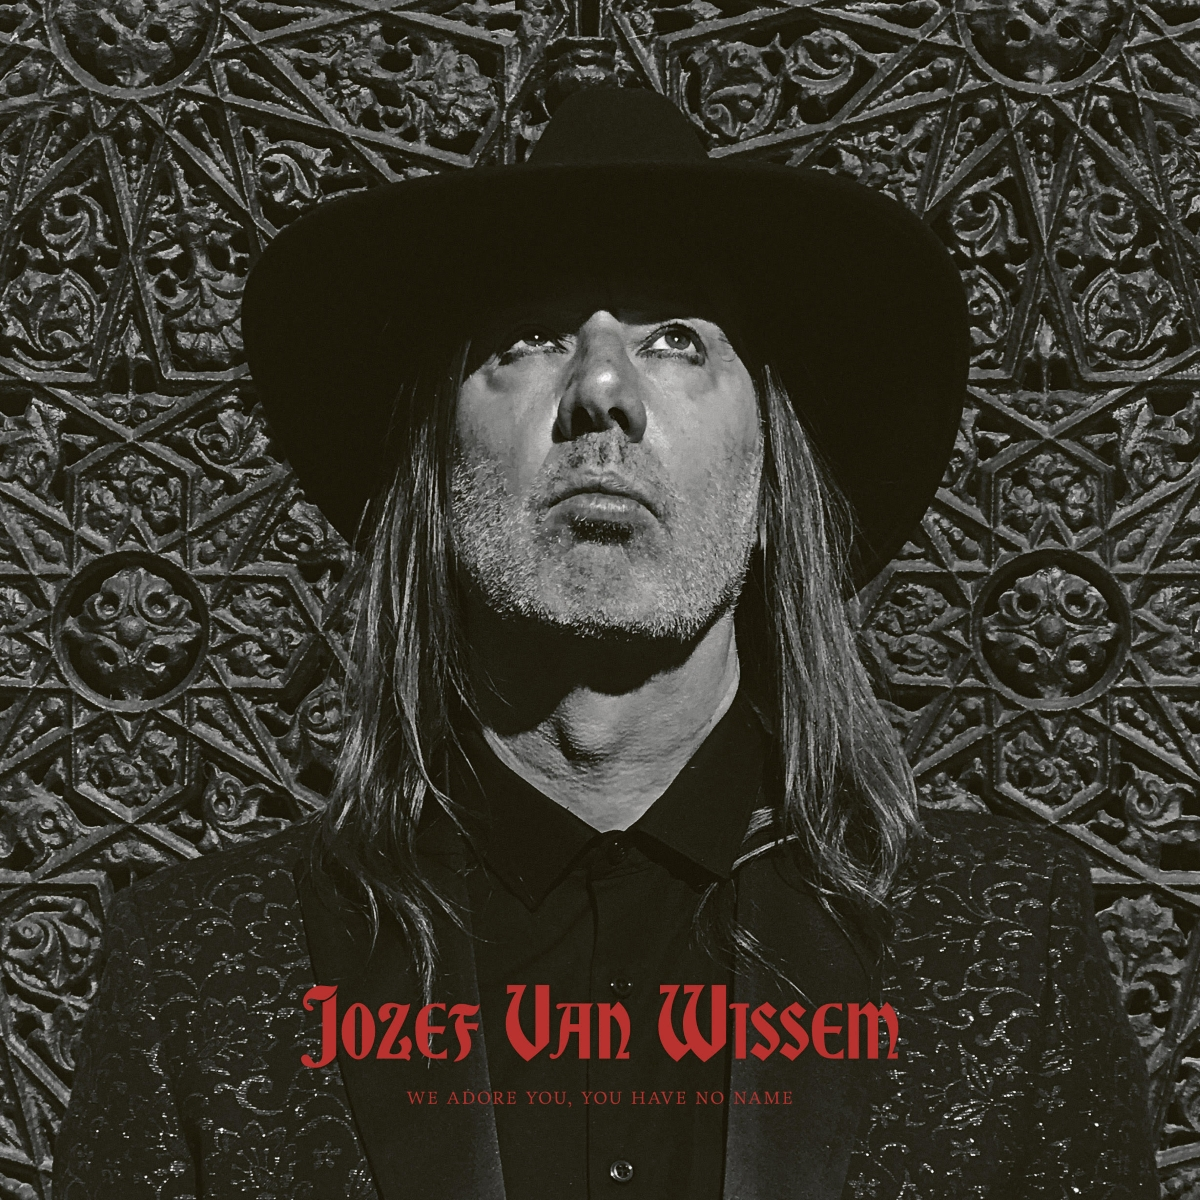 Premiere: Jozef van Wissem shares new song 'Bow Down' & presents new album at LGW18